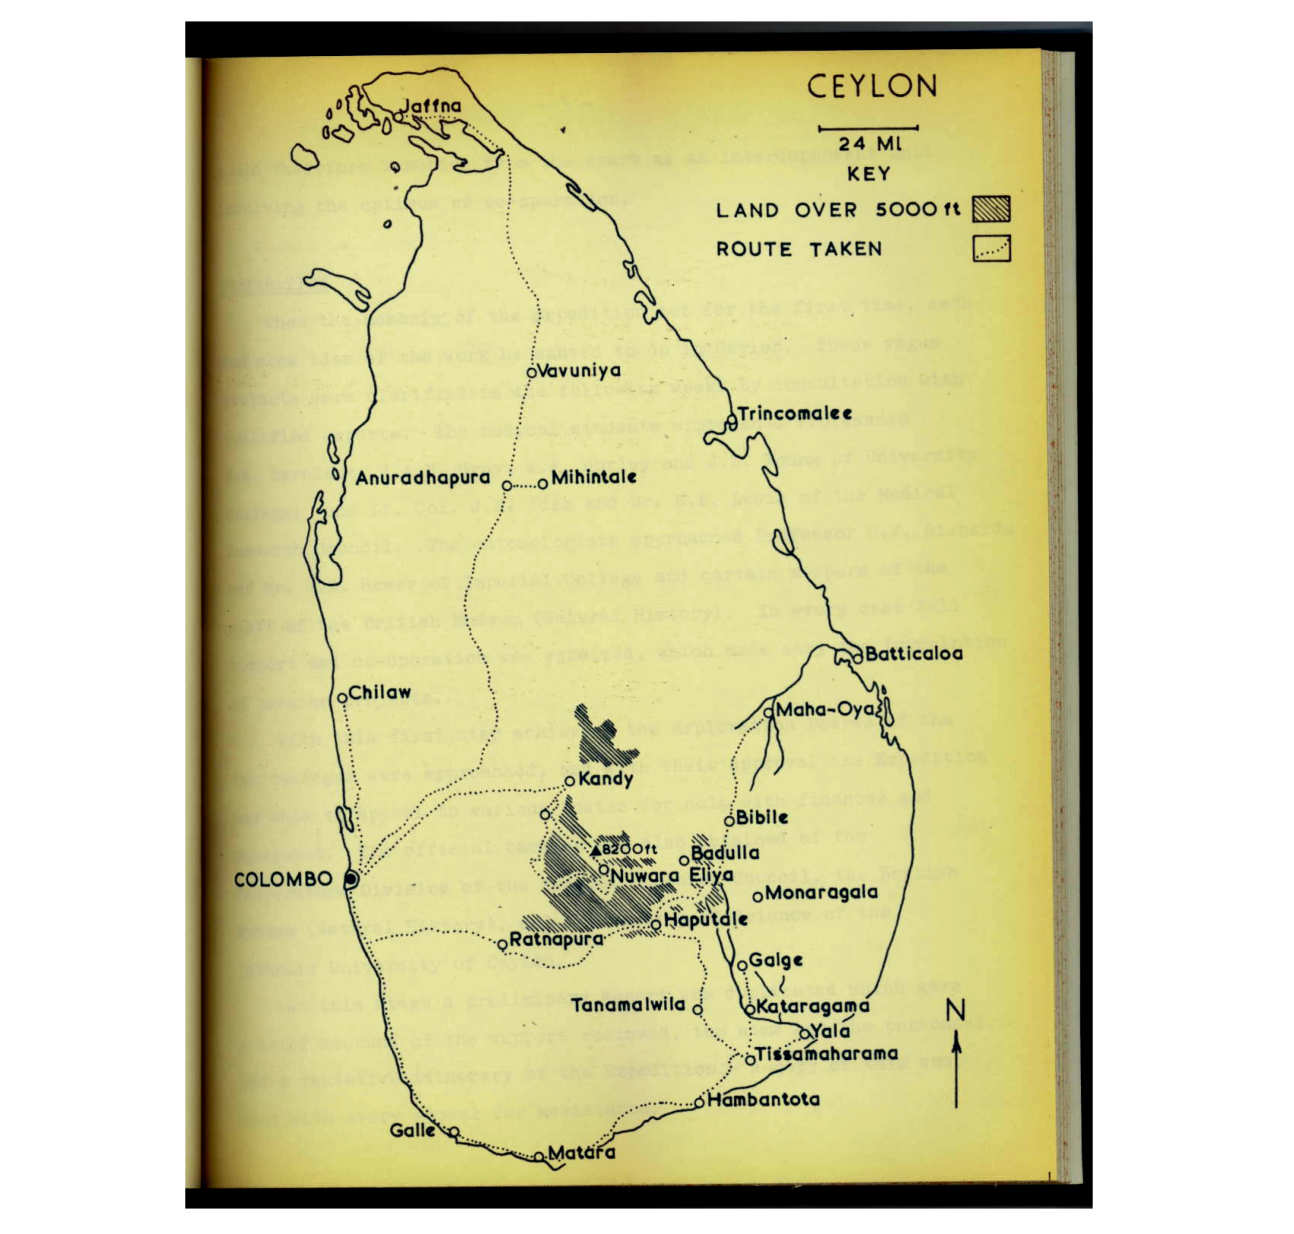 Map of Ceylon (Sri Lanka)